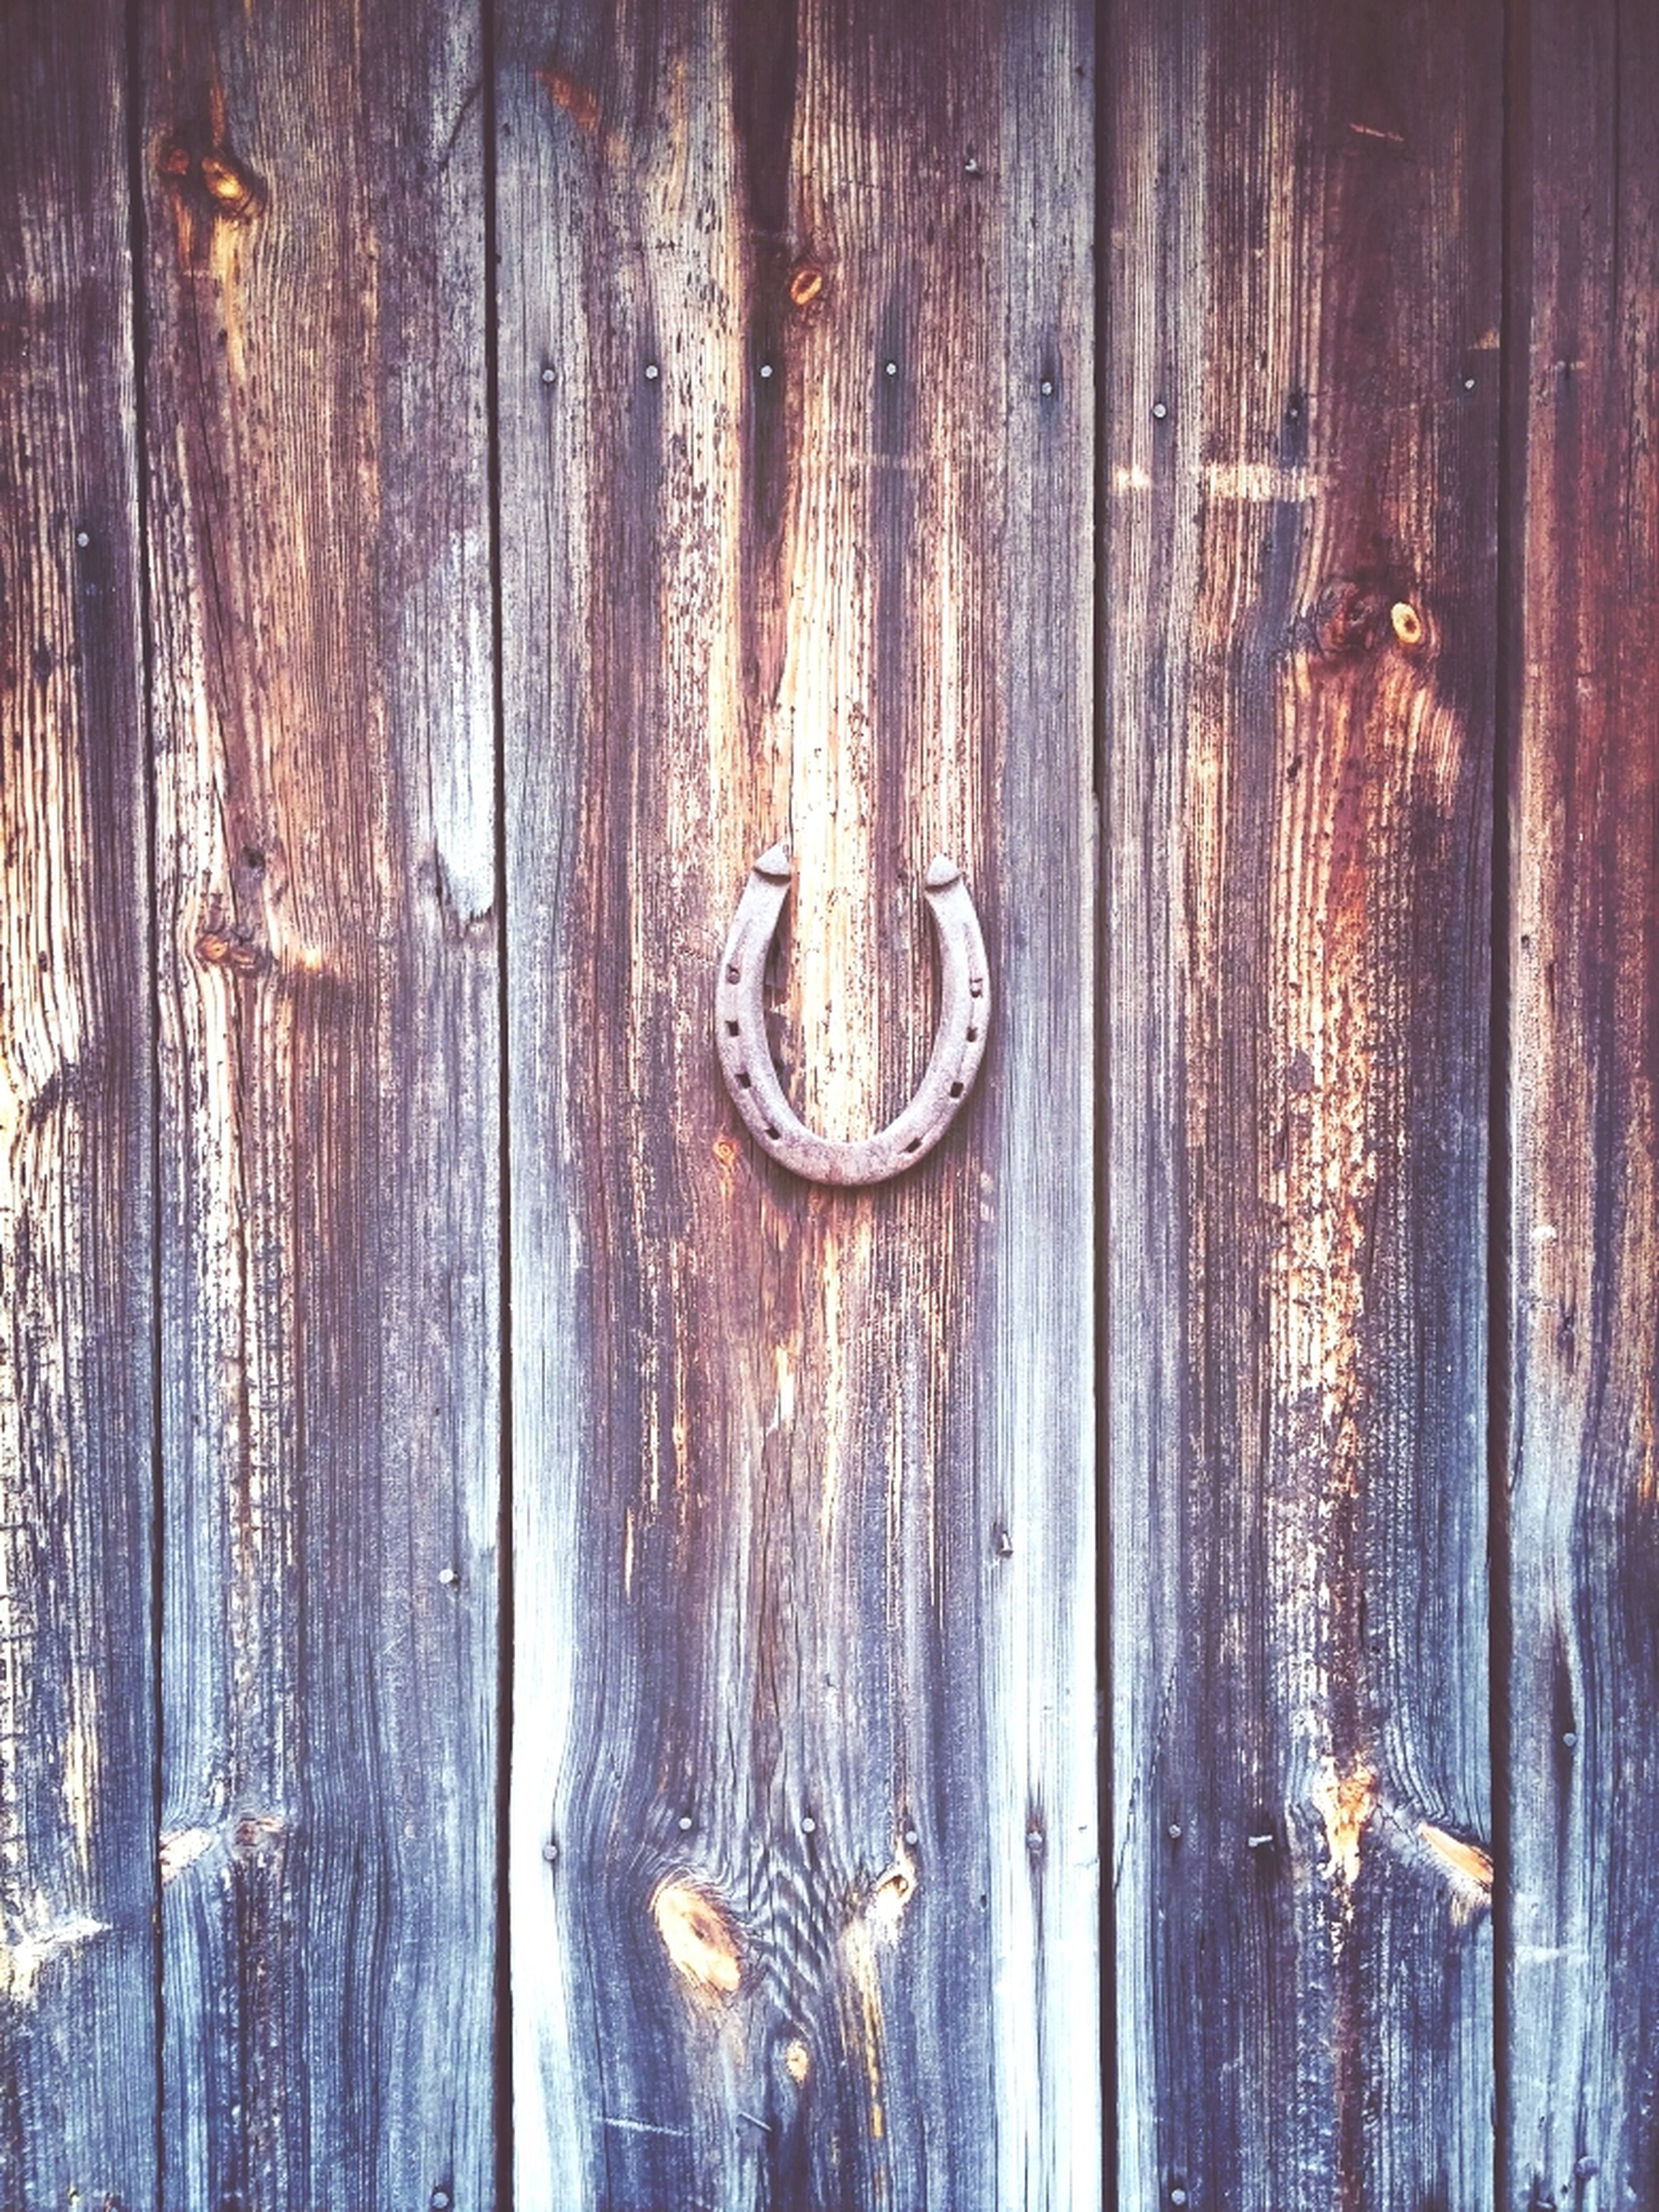 wood - material, door, full frame, wooden, close-up, rusty, metal, old, backgrounds, weathered, textured, wood, security, safety, protection, closed, metallic, pattern, lock, doorknob